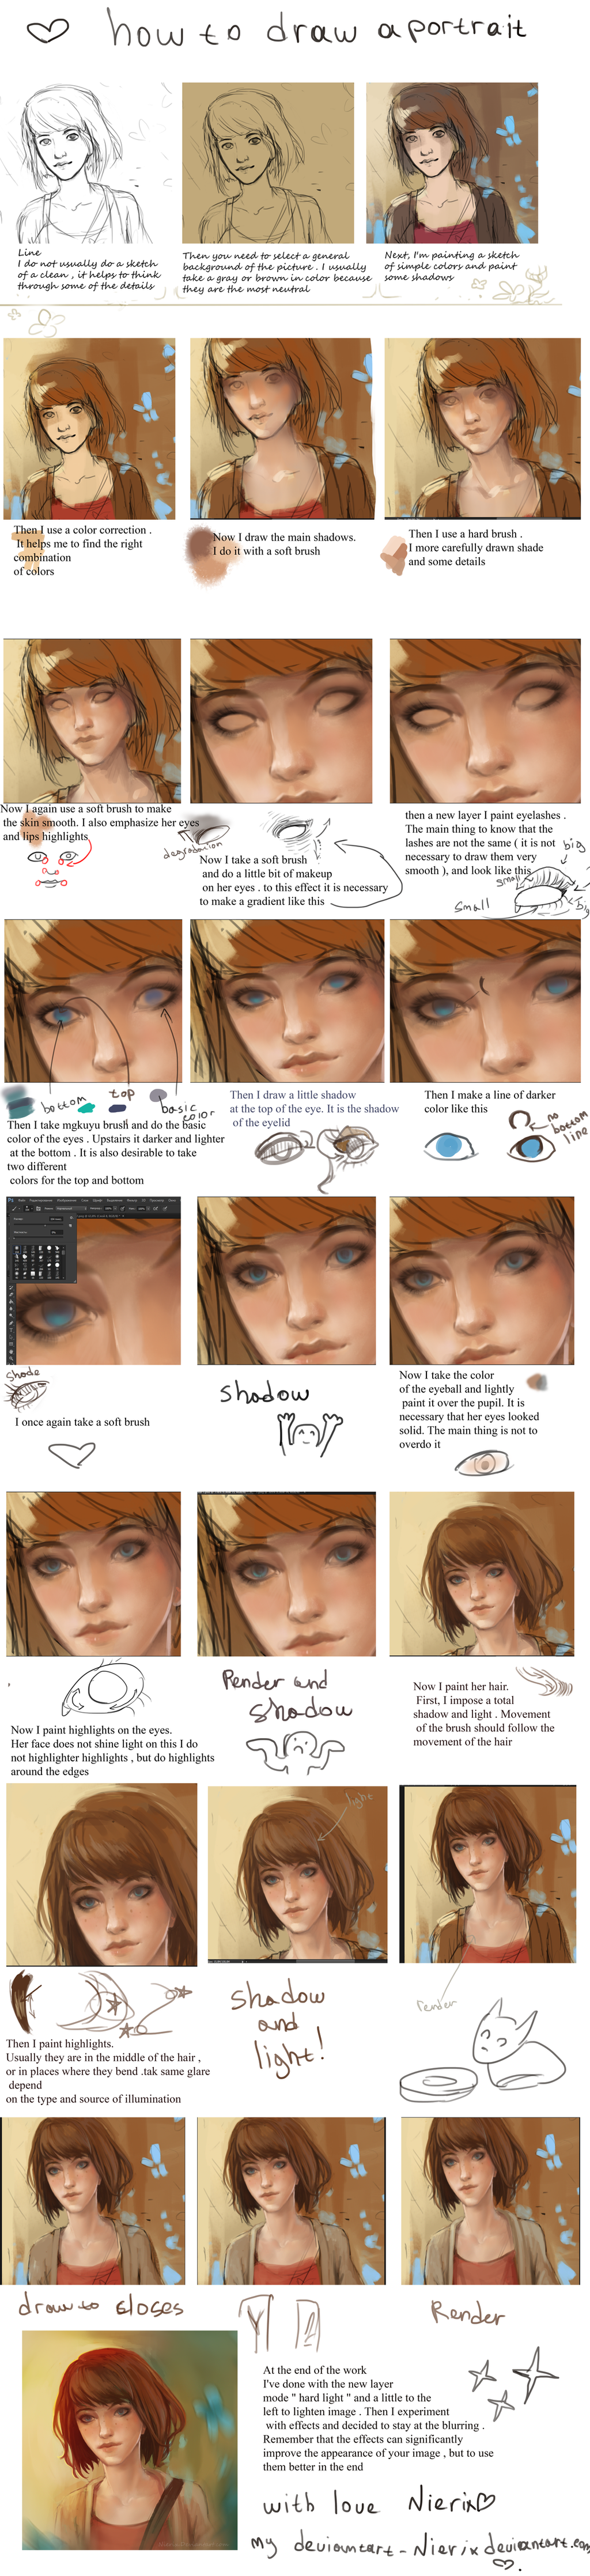 ... juliajm15 14781 358 How to draw a portrait ^_^ tutorial by Nieris Image result for concept of lighting in digital art Digital painting ...  sc 1 st  WPDevil & Digital Painting Tutorials u2014 WPDevil